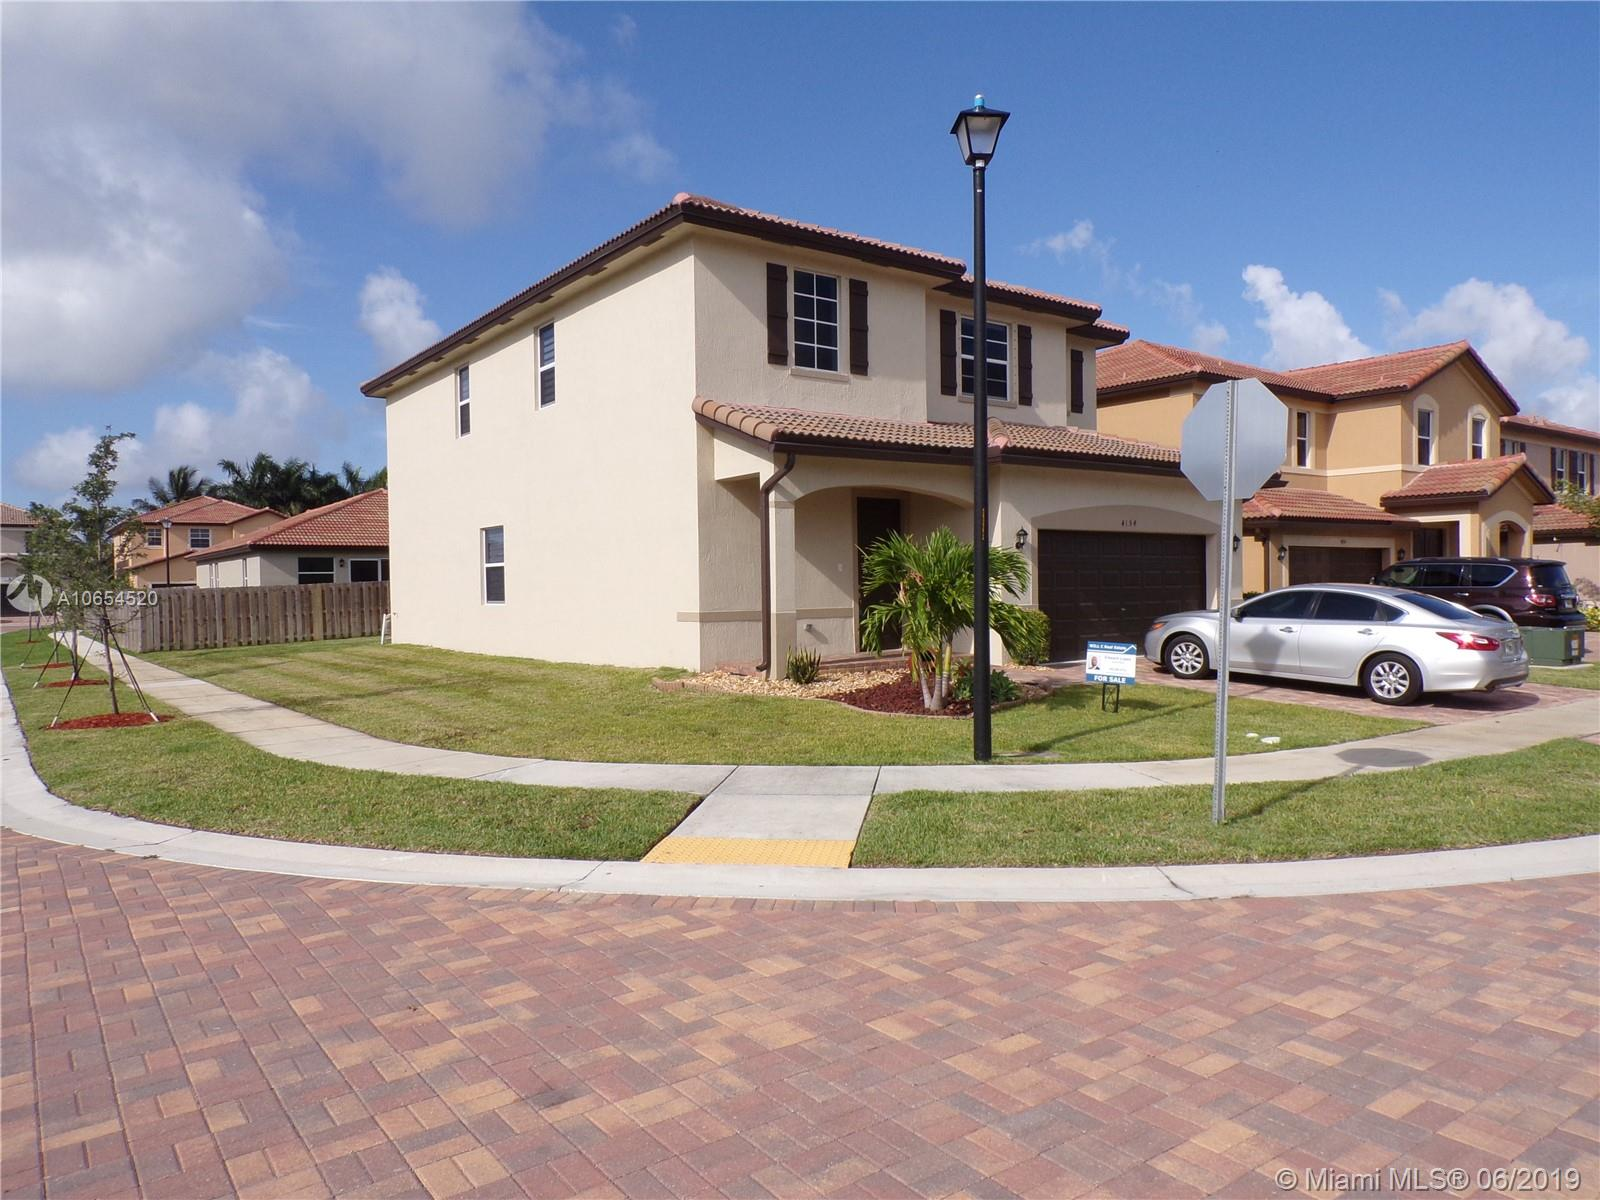 4154 NE 21st St, Homestead, FL 33033 - Homestead, FL real estate listing